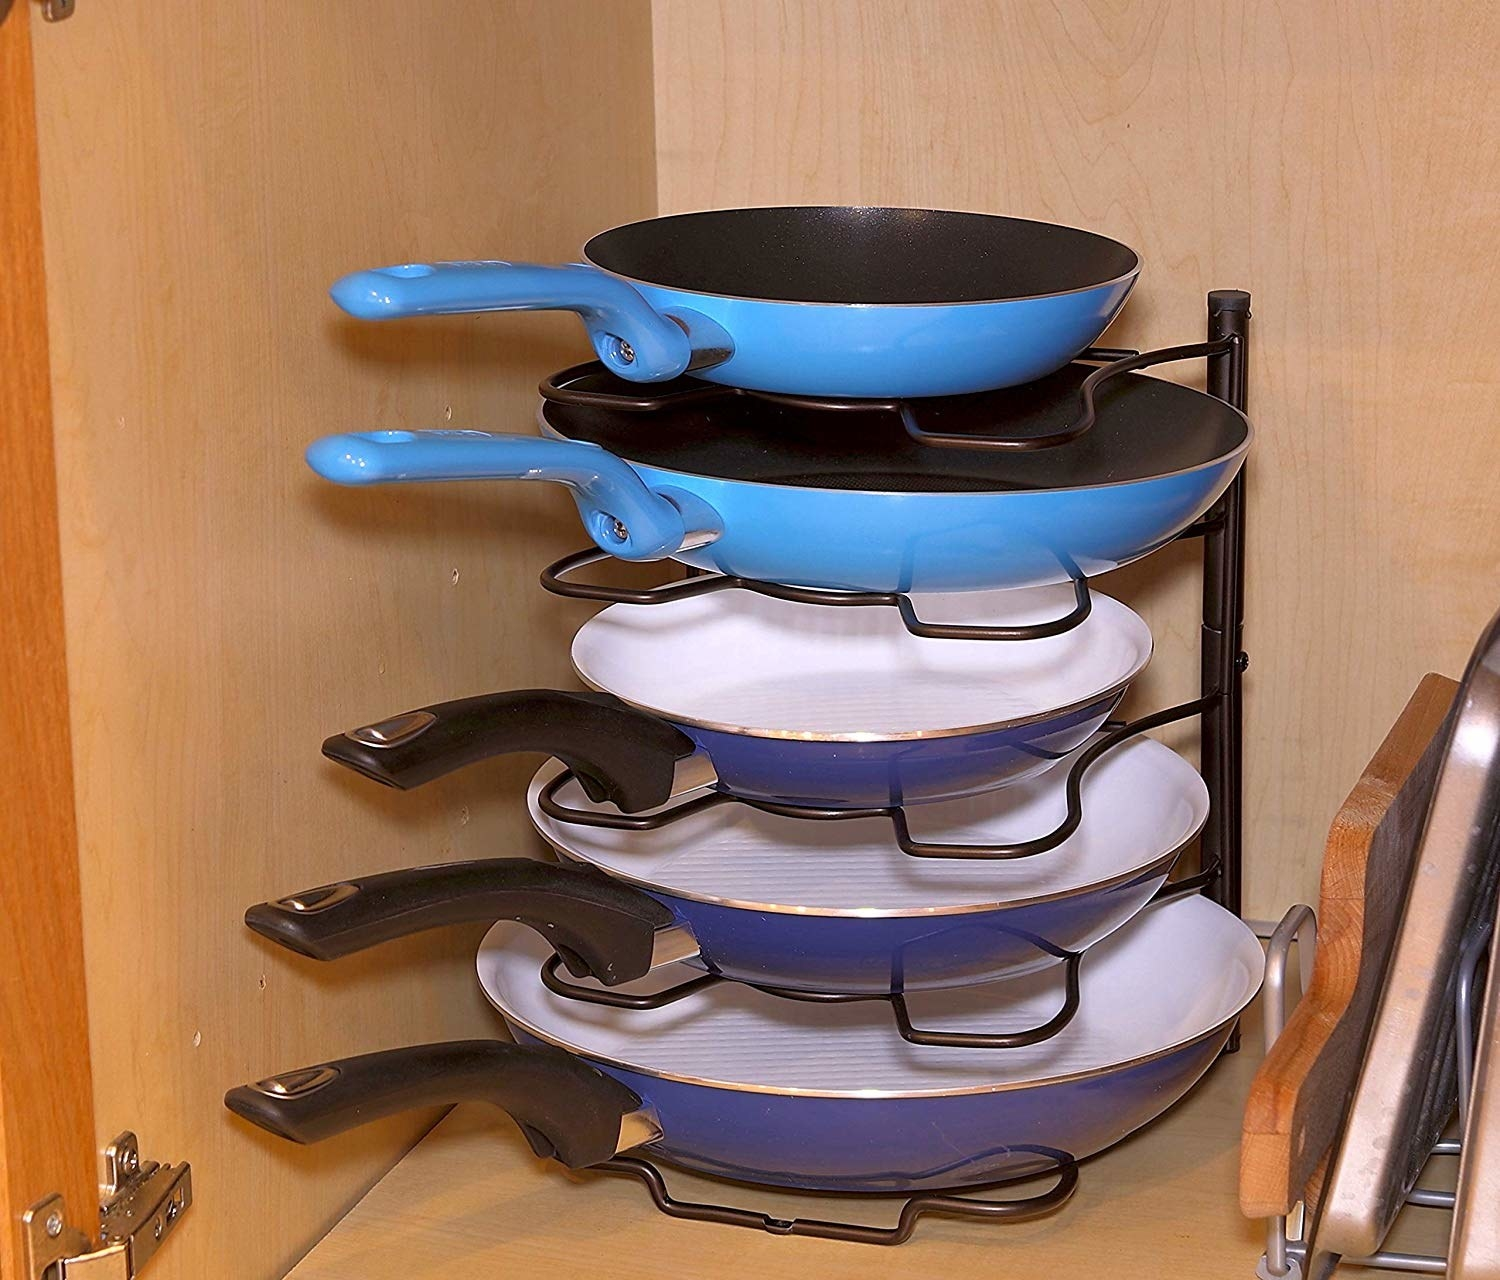 the pan holding holding five different sized pans